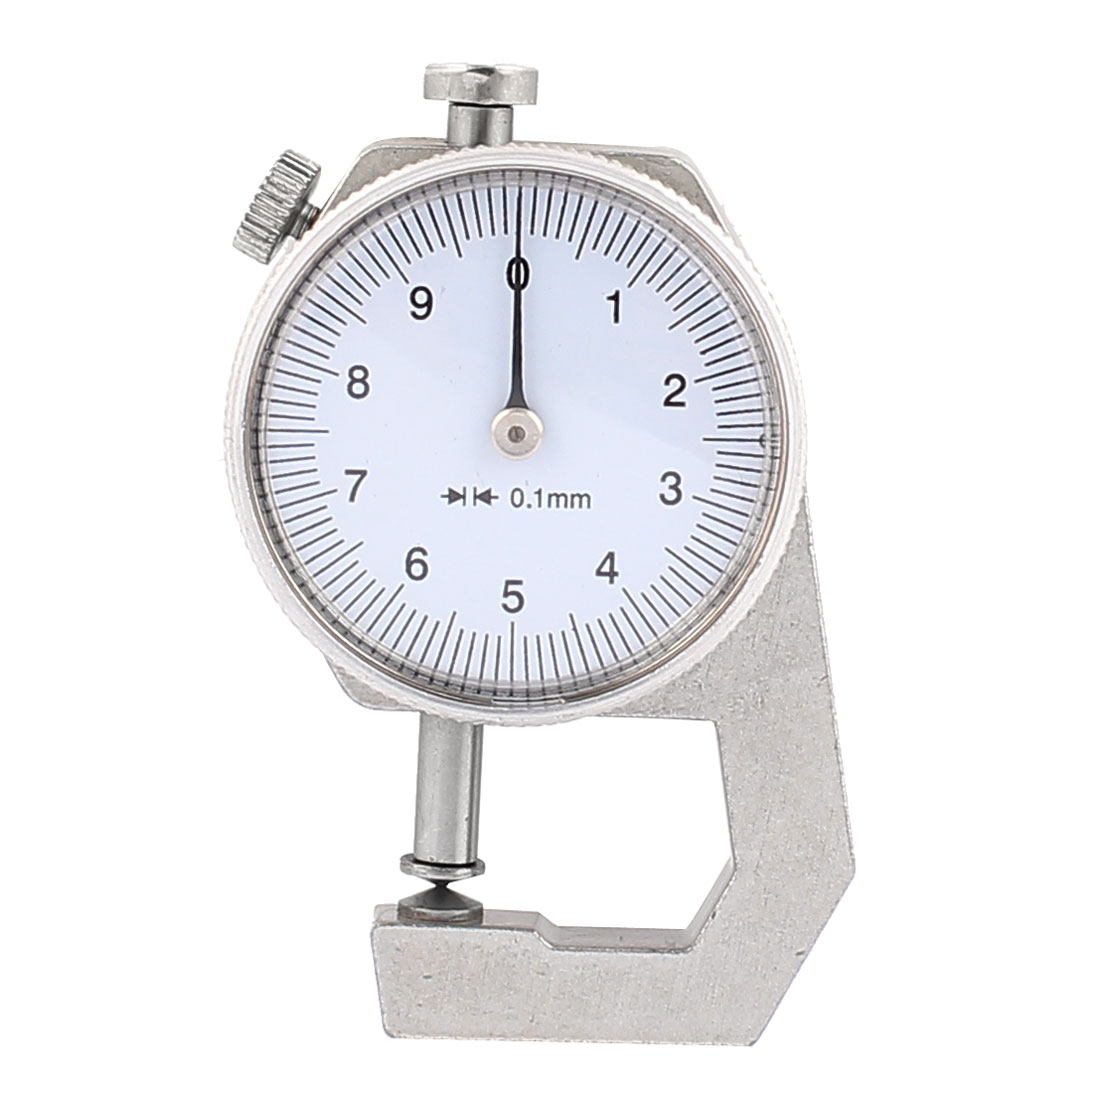 0 to 10mm Measuring Range 0.01mm Grad Round Dial Thickness Gauge C-02